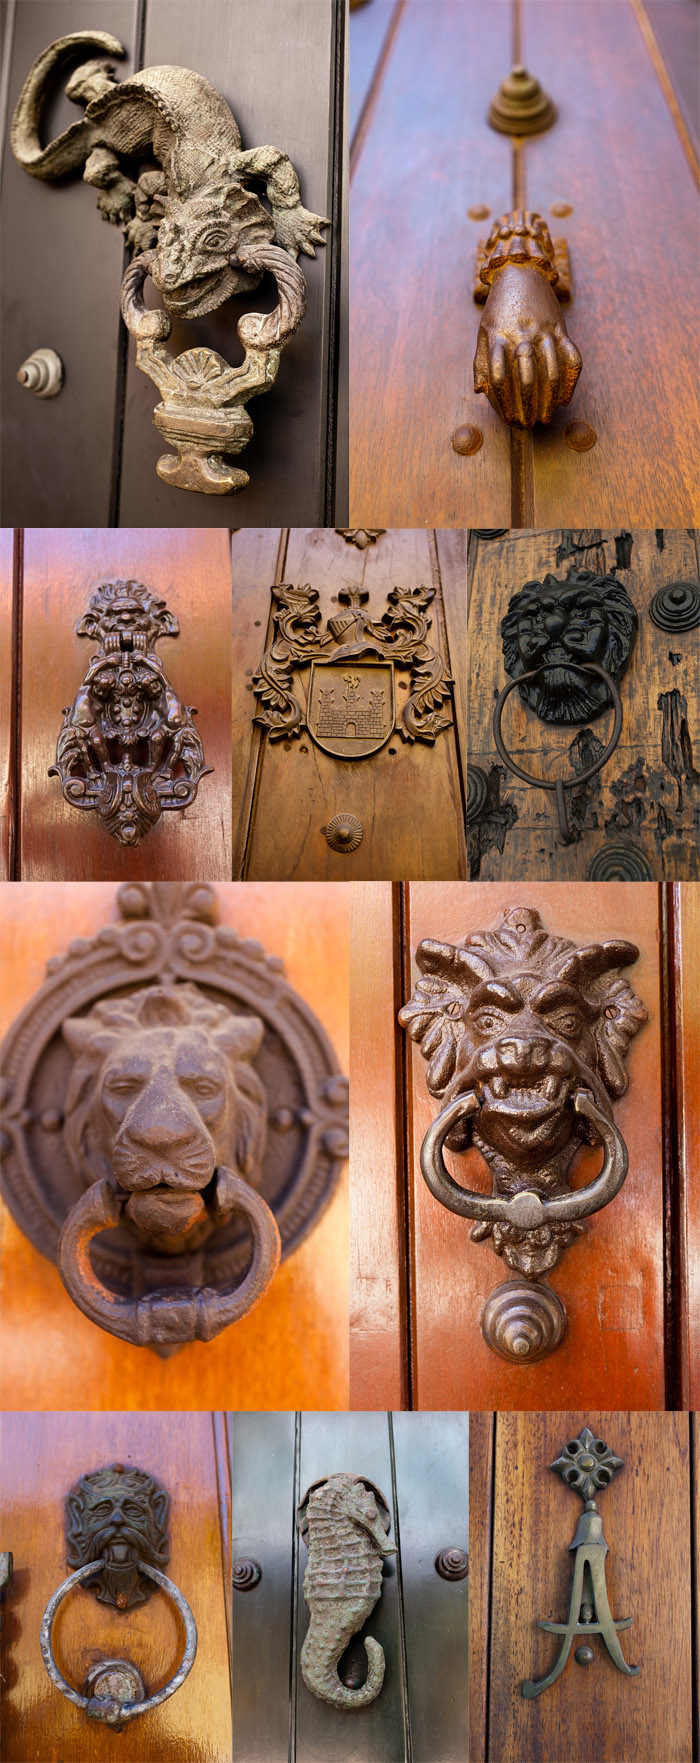 Ornate door knockers in Cartagena, Colombia